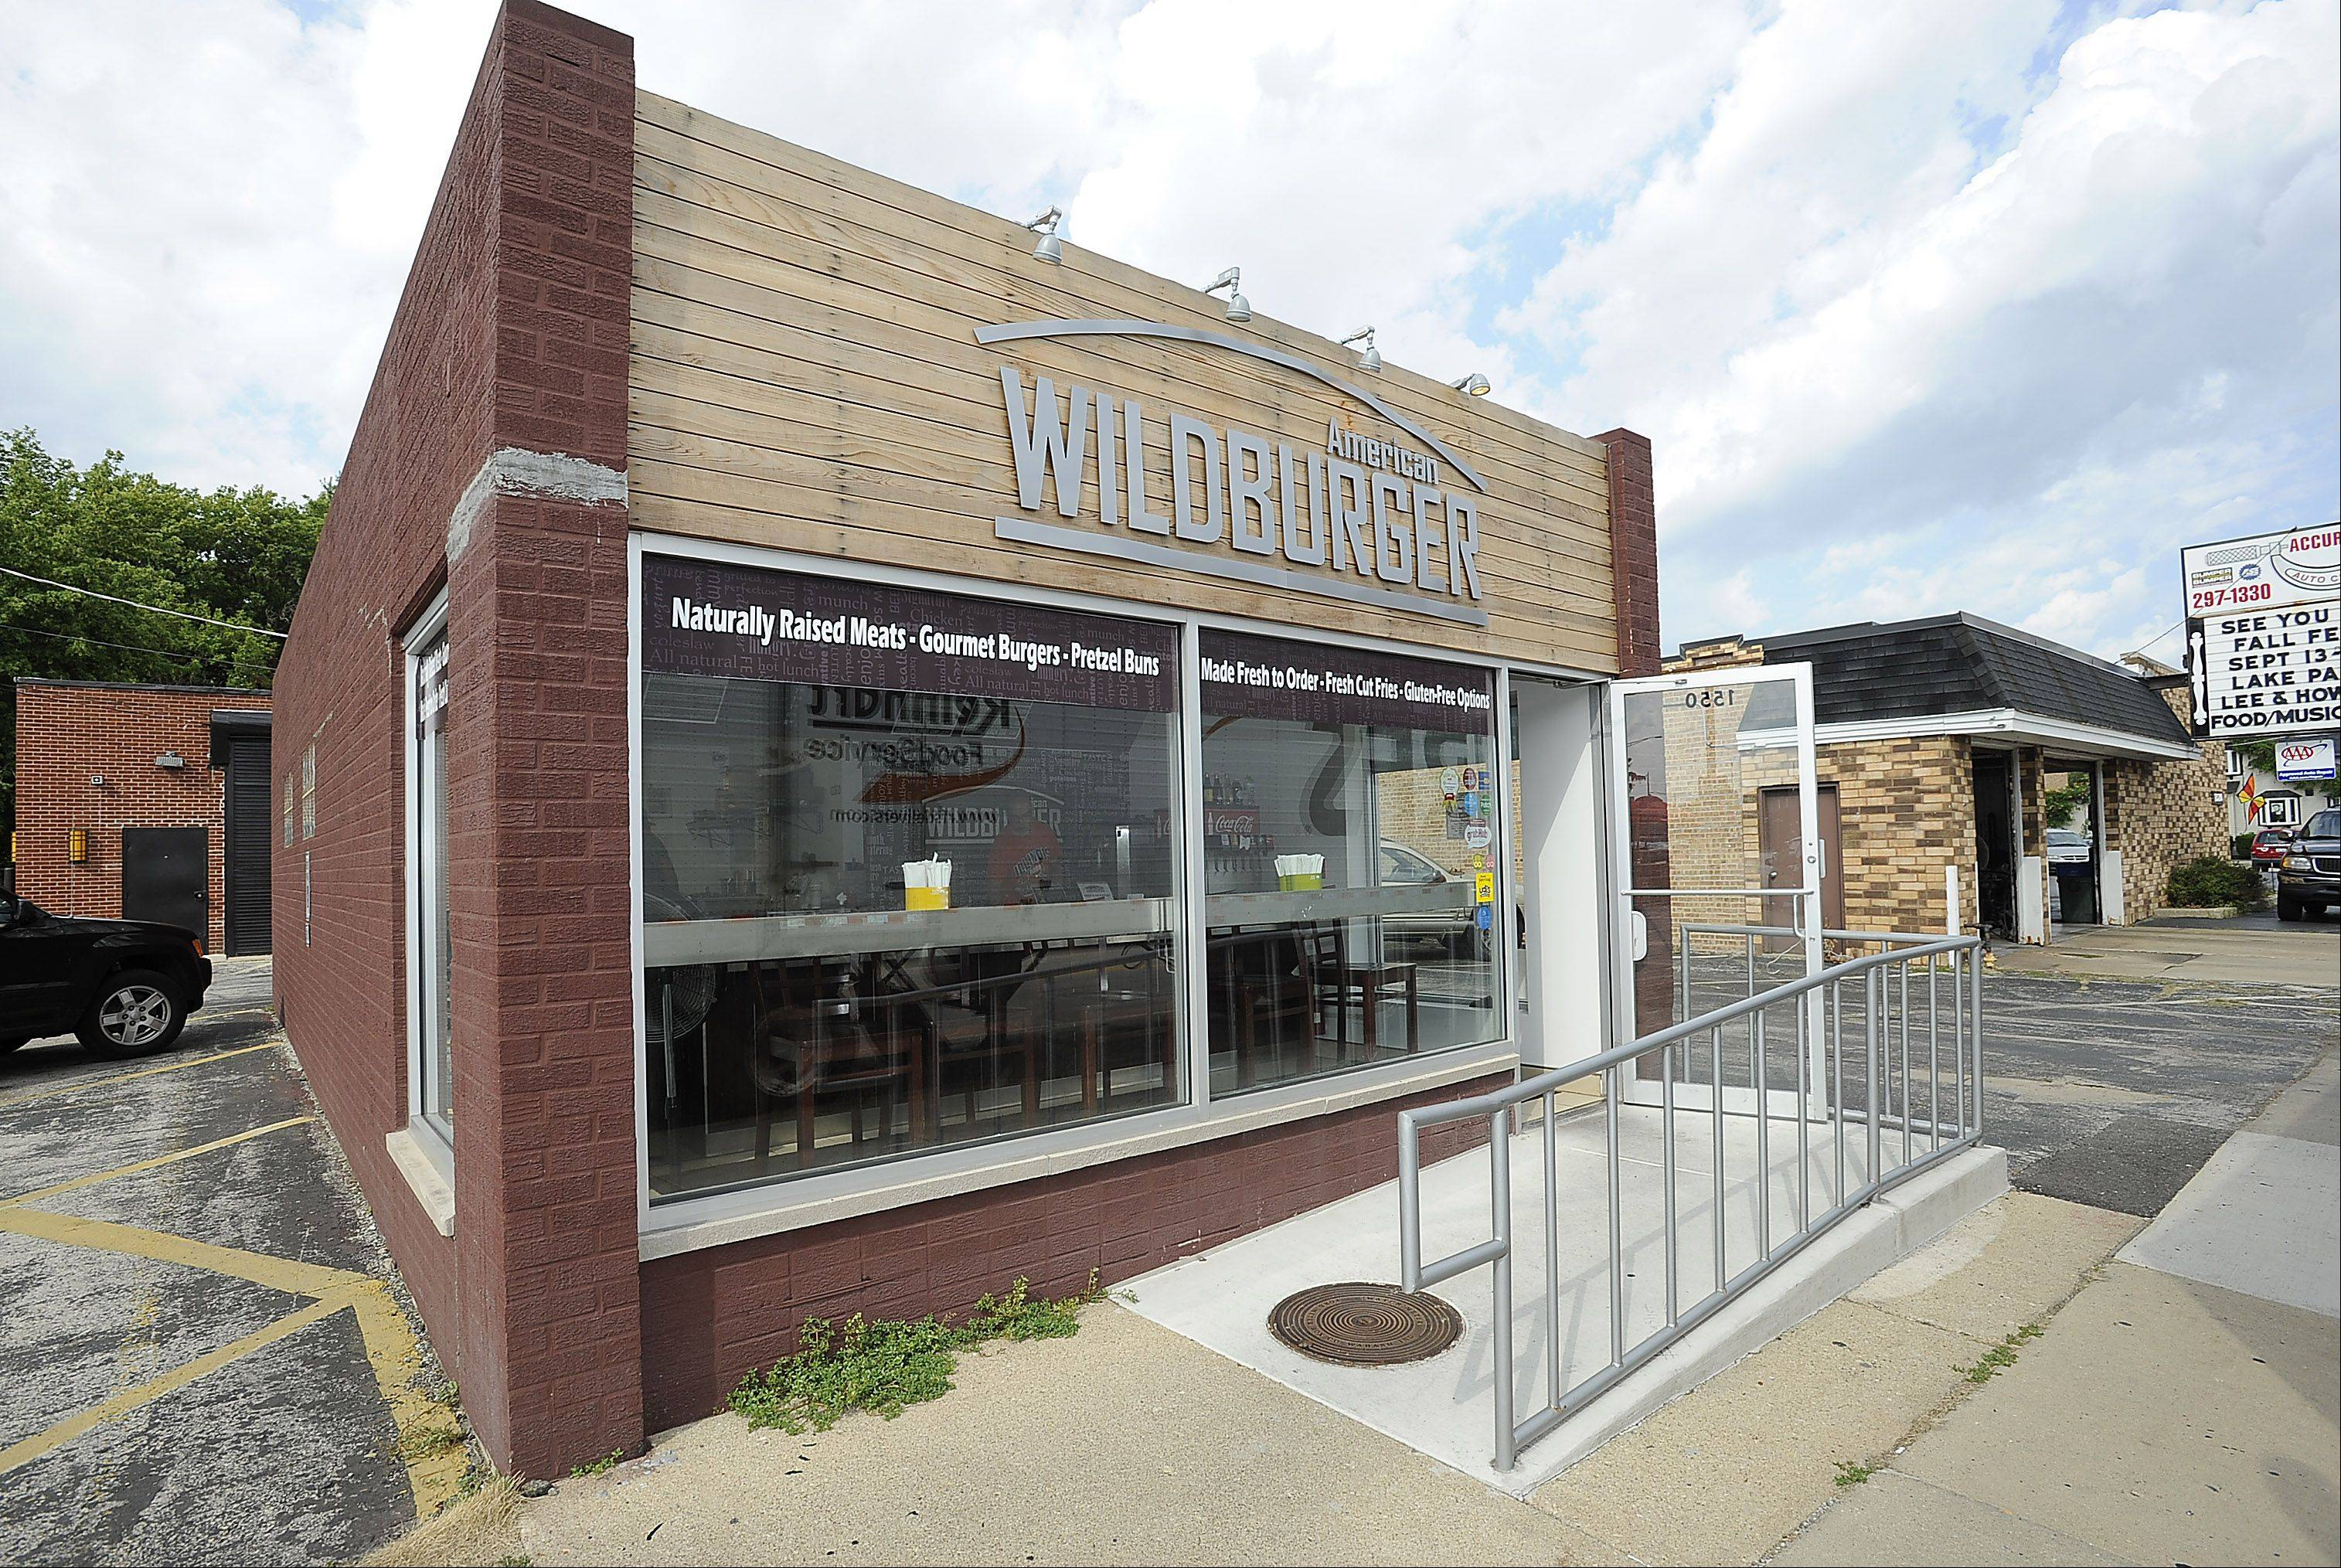 The American Wildburger in Des Plaines serves gourmet burgers from a small storefront on Oakton Avenue.